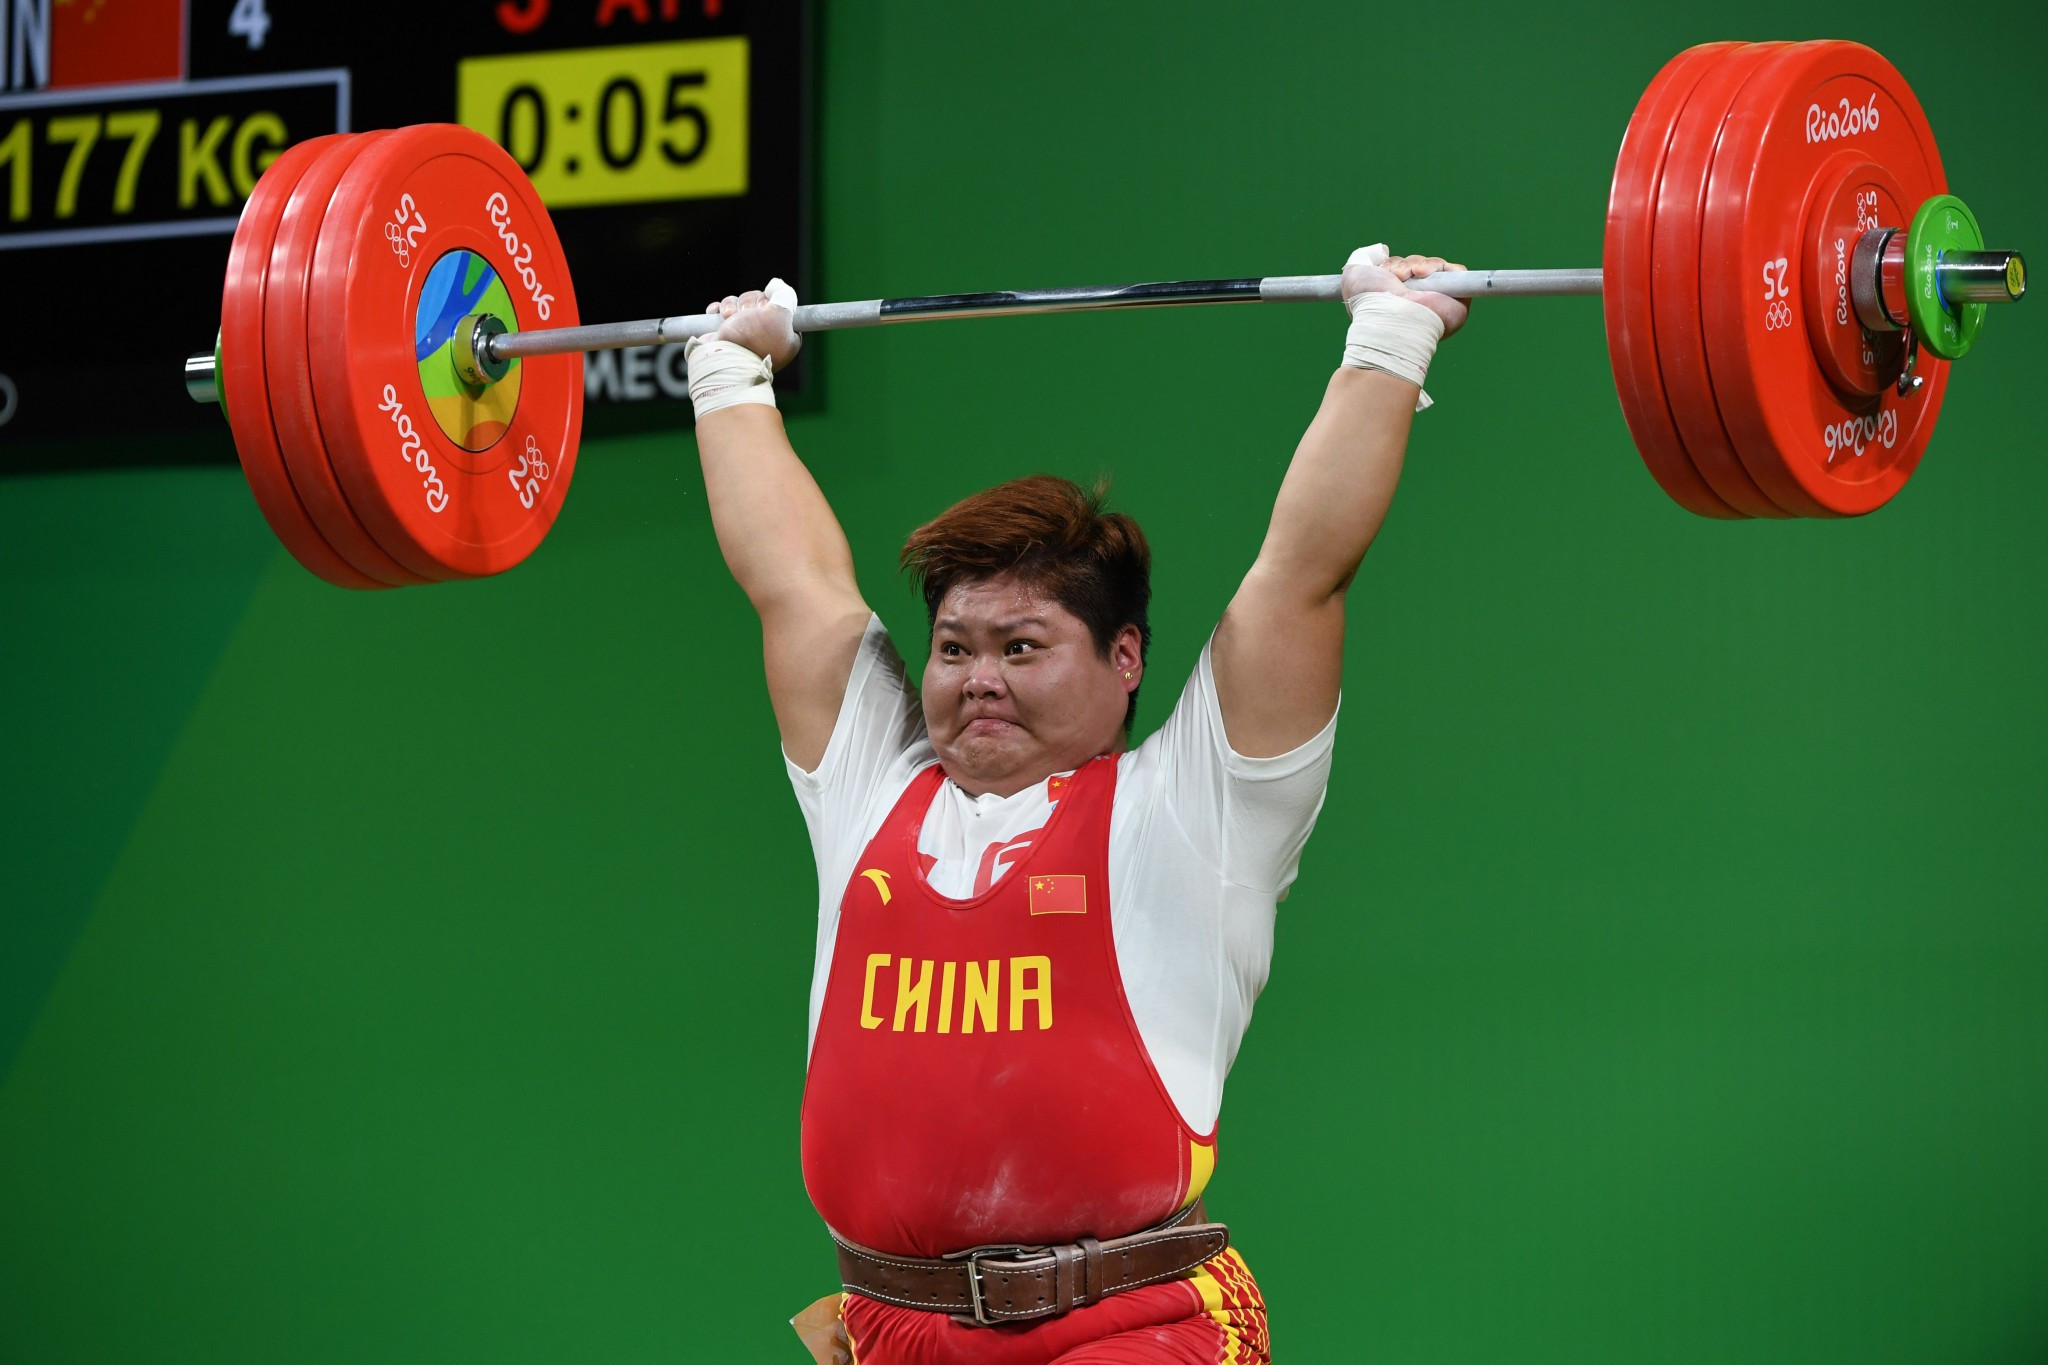 Shi Zhiyong leads way in National Games of China as as country demonstrates weightlifting dominance